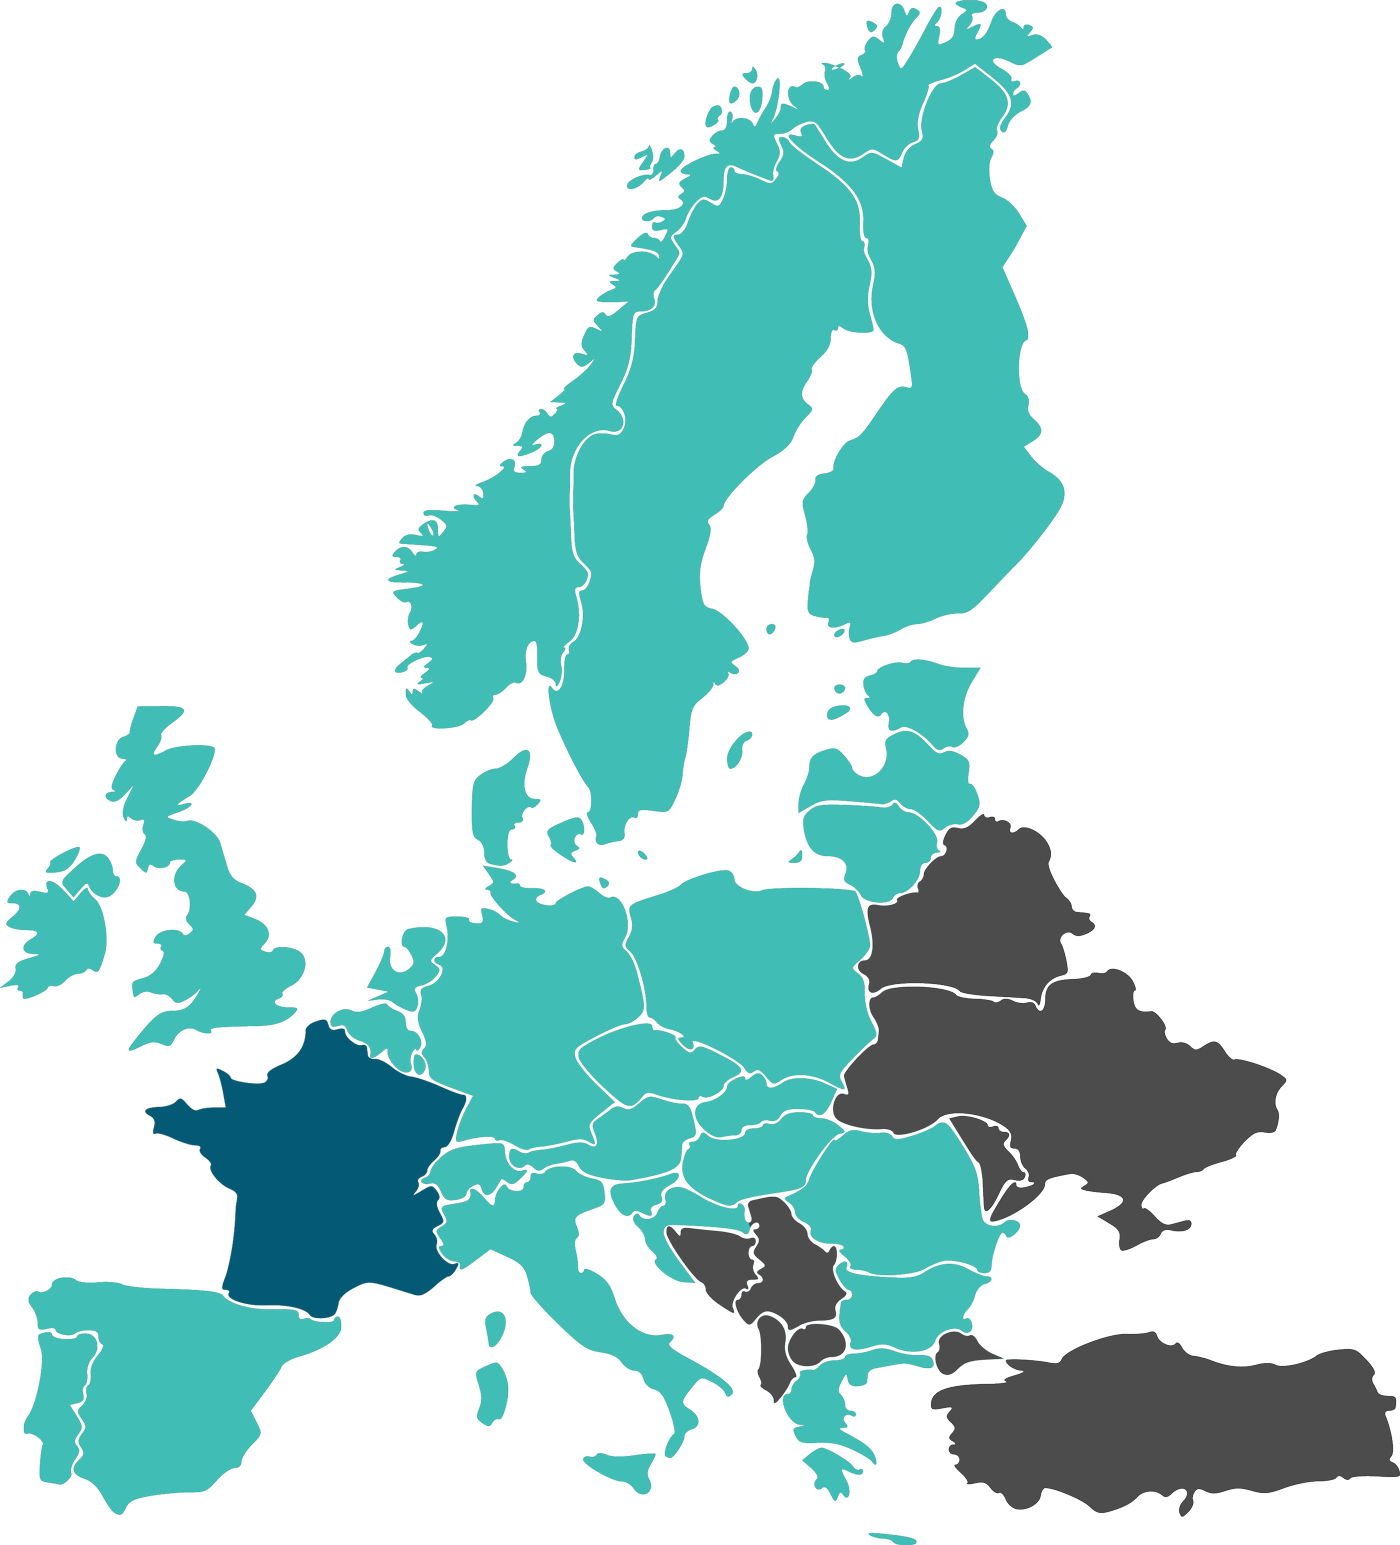 Europe 4G coverage